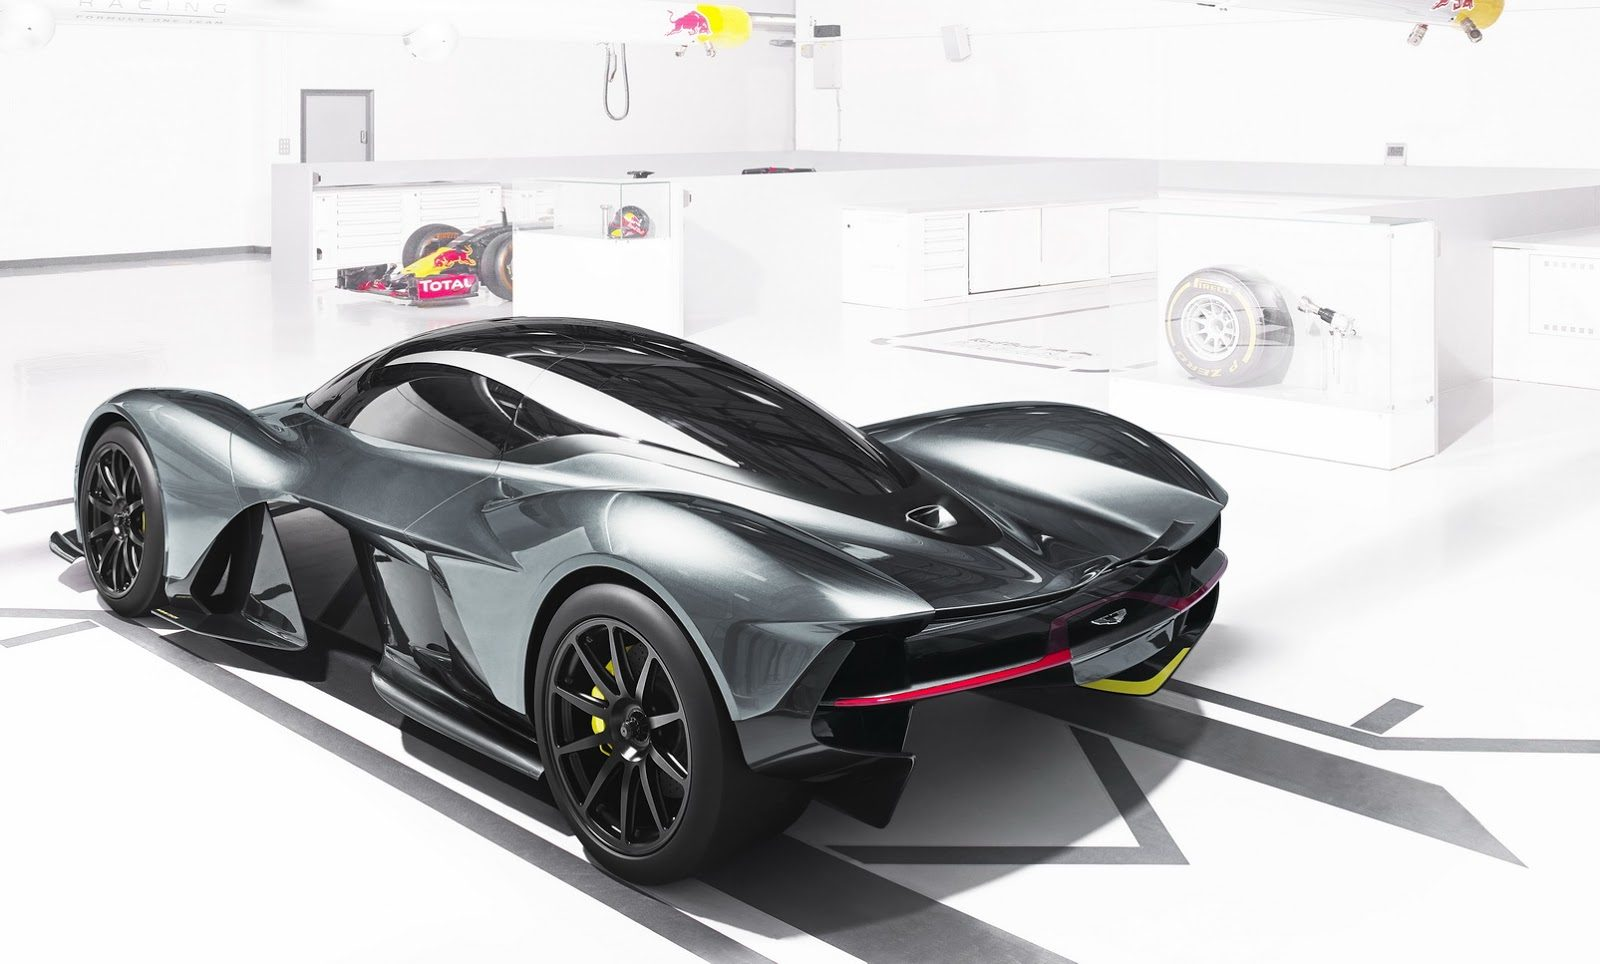 aston-redbull-am-rb-001-hypercar-5